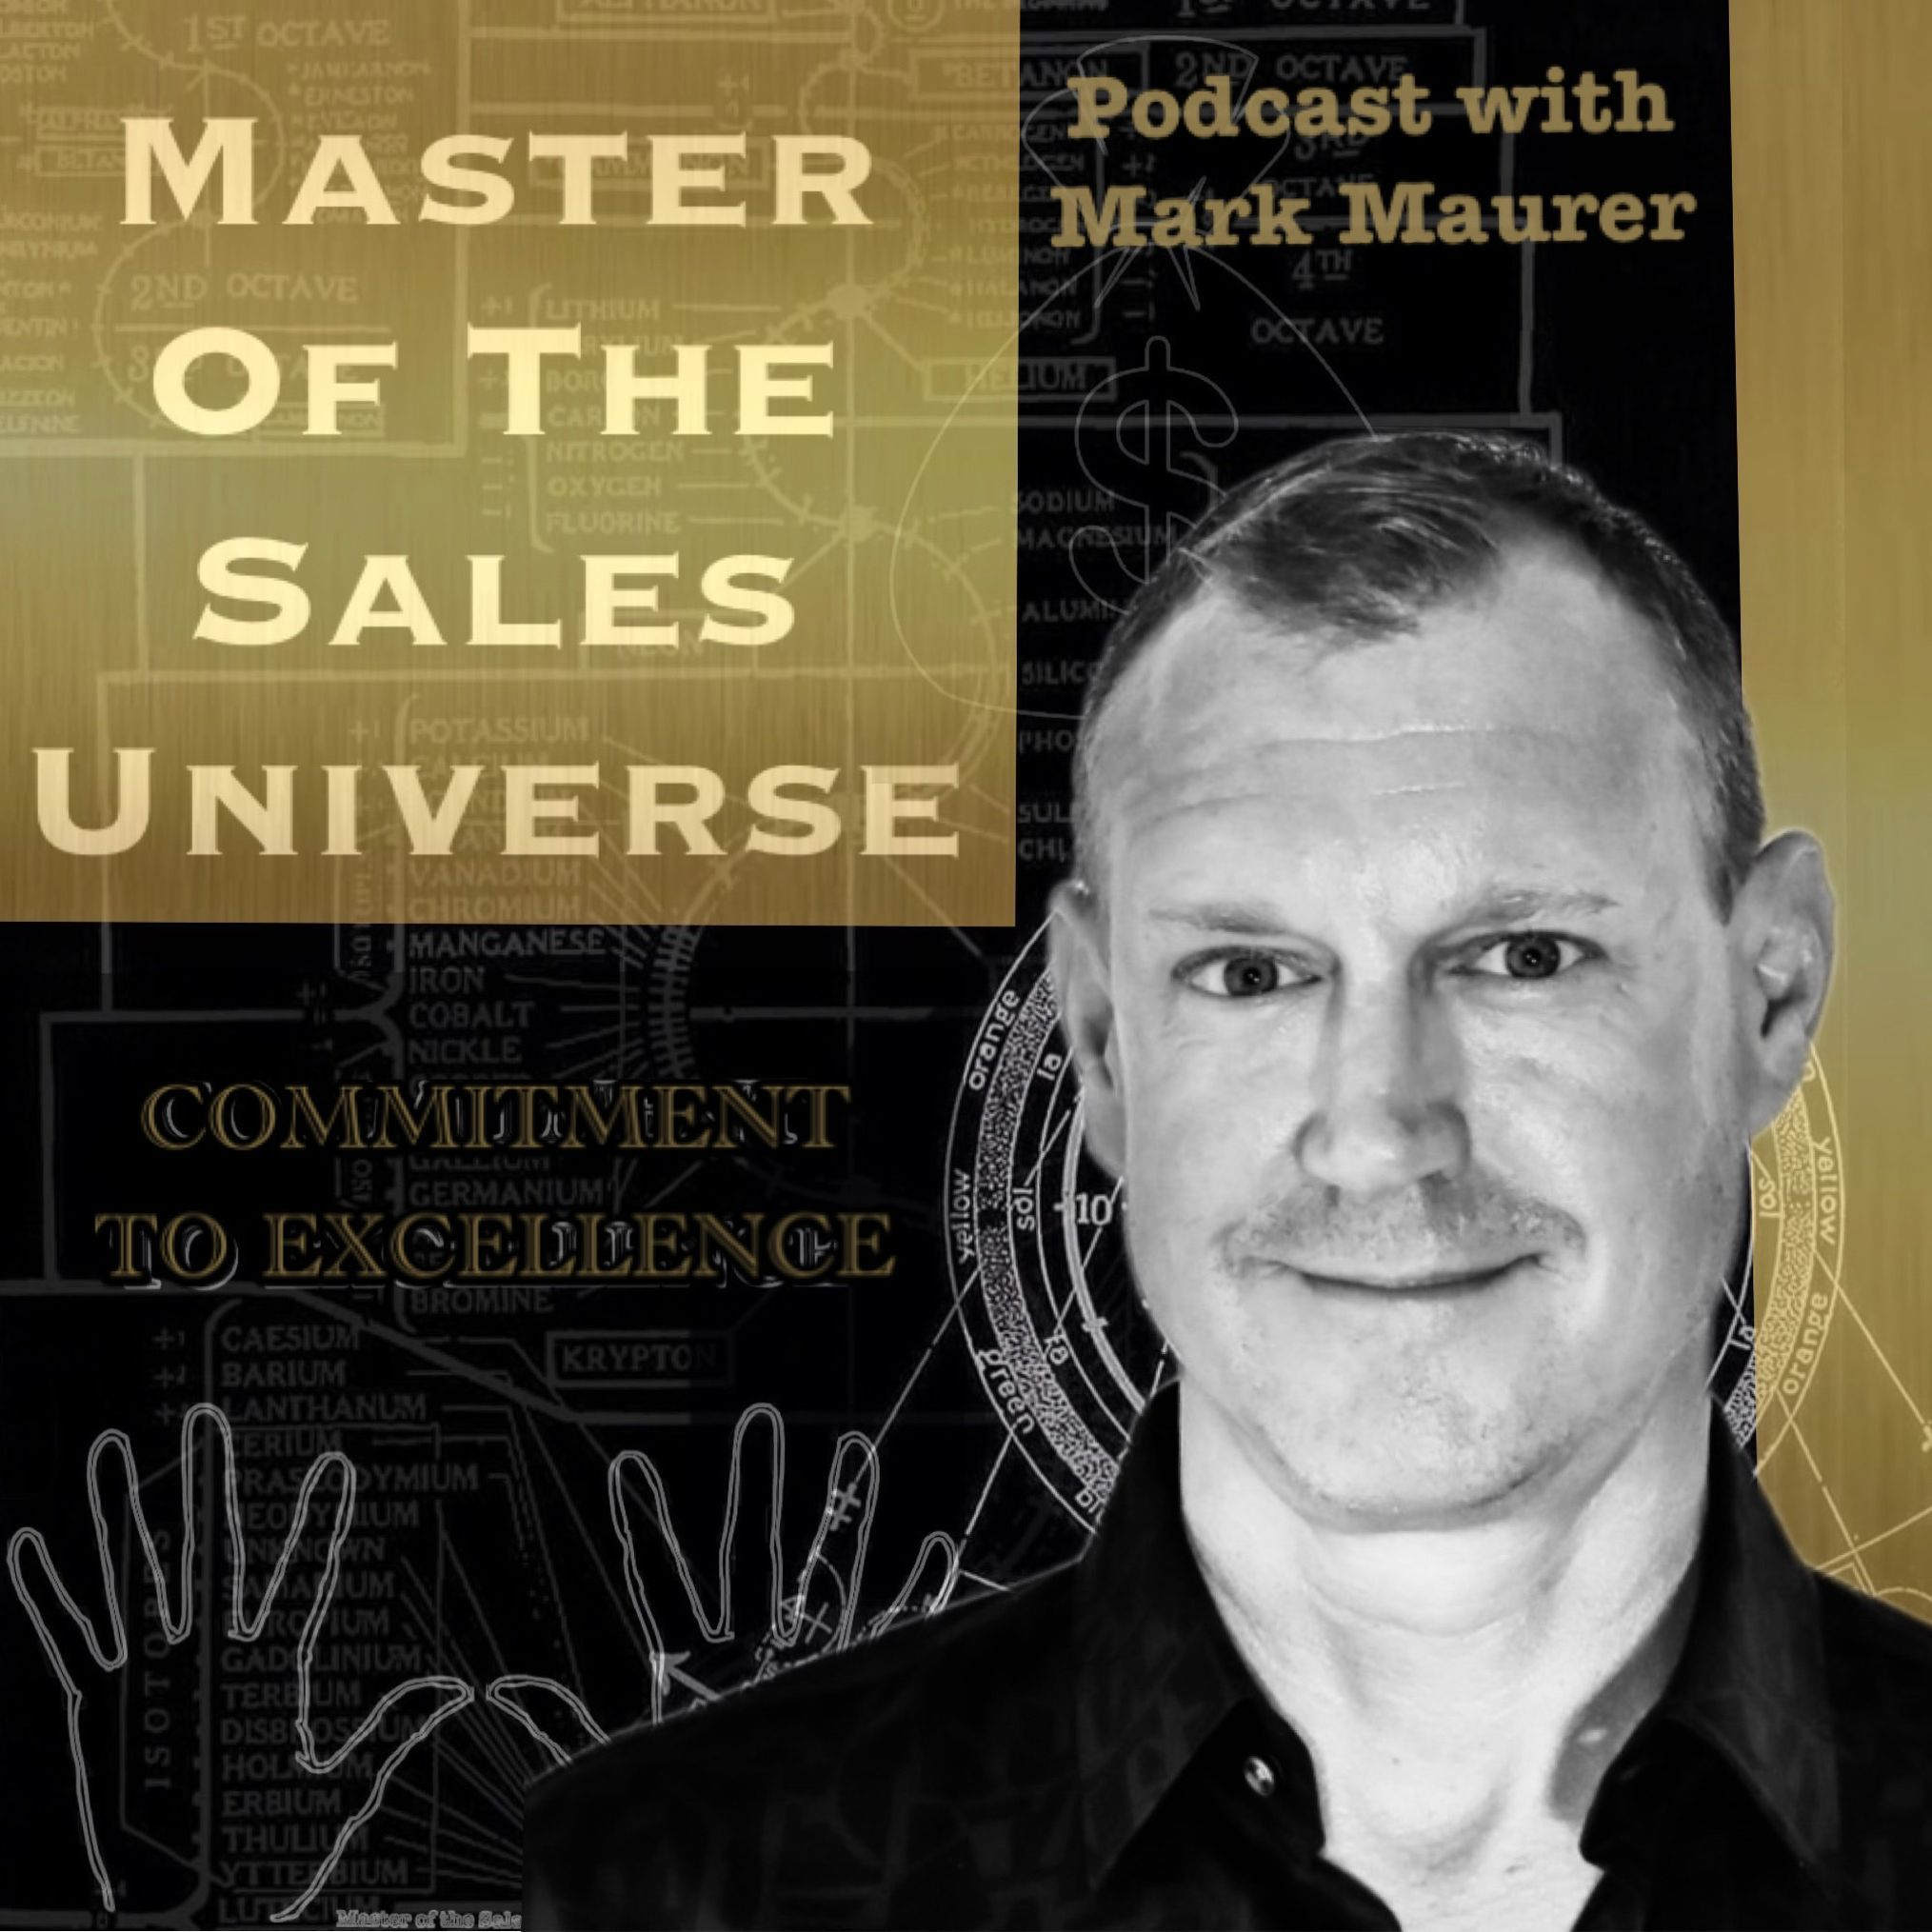 Master of the Sales Universe